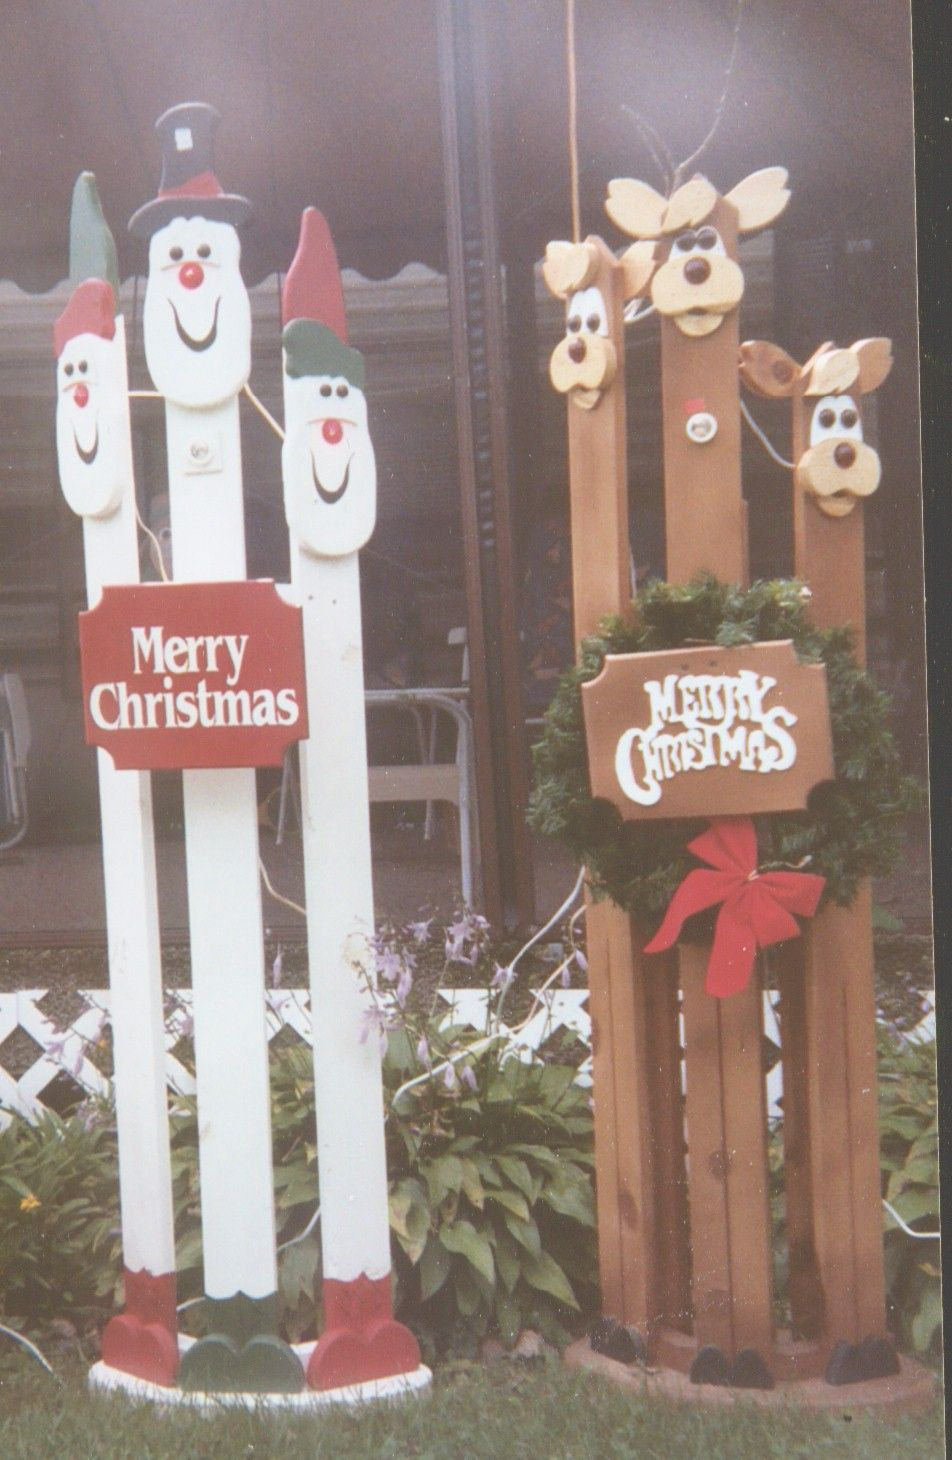 pictures of crafted wooden painted christmas decorations On wood lawn ornament patterns